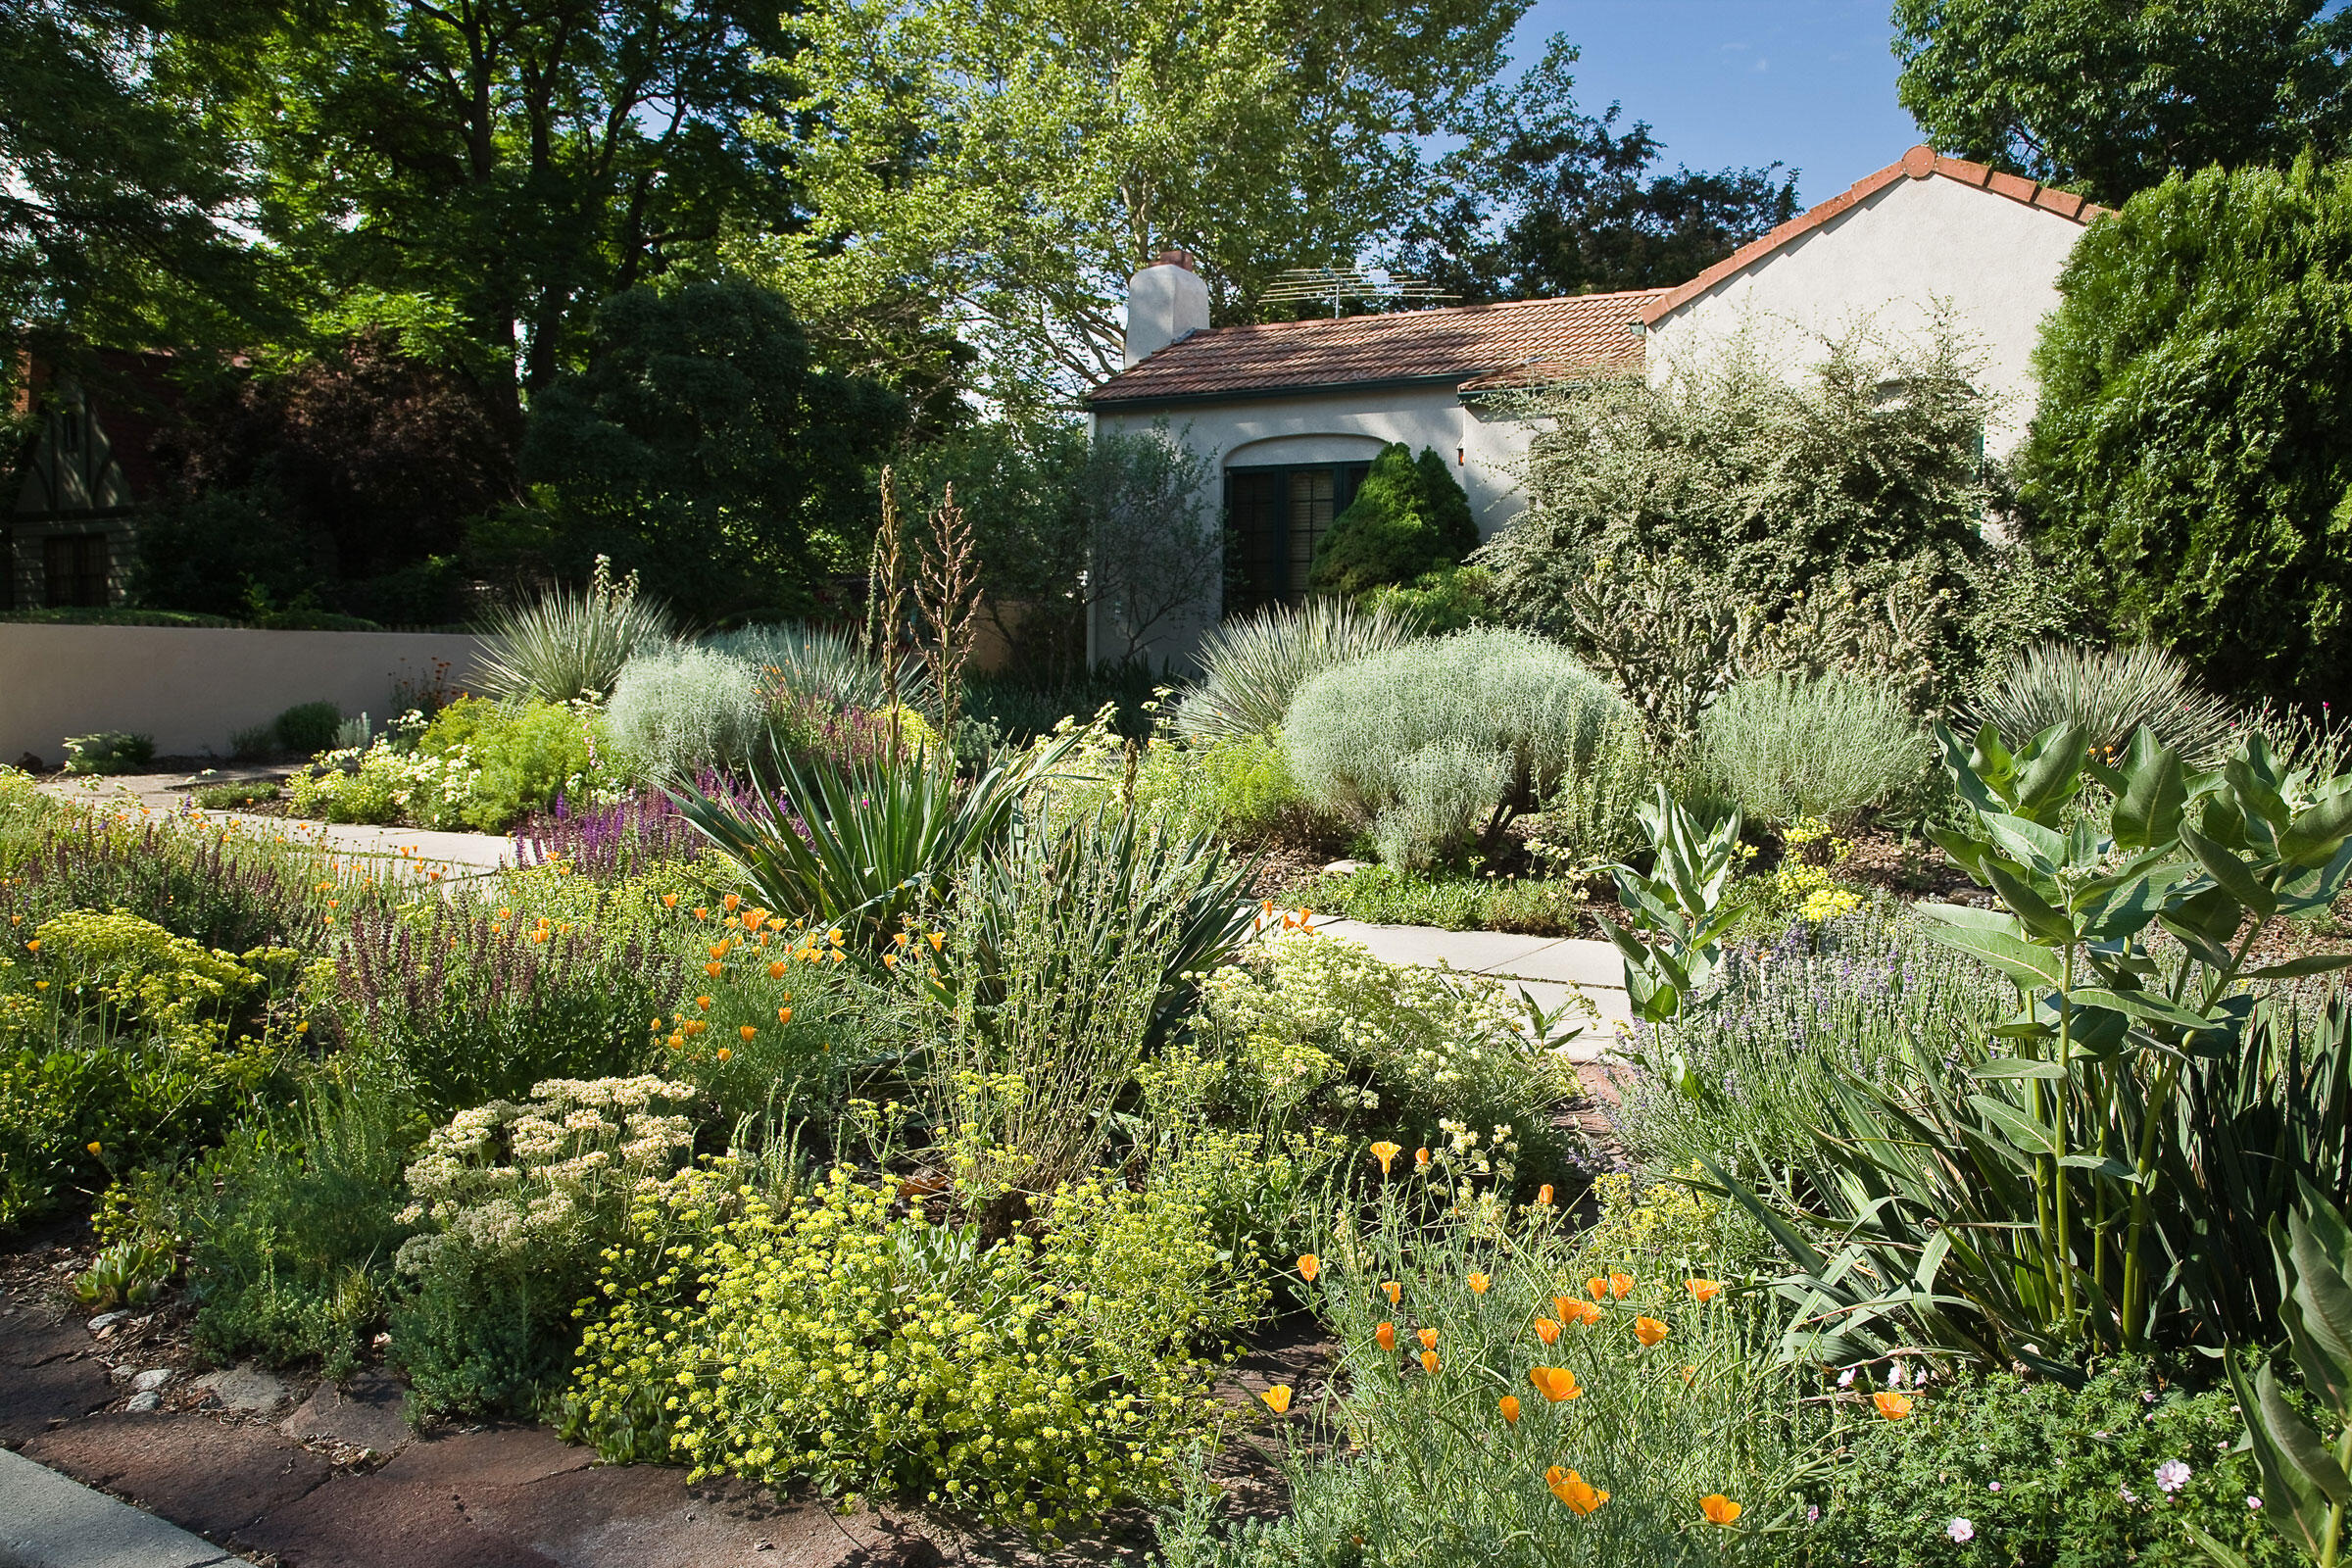 A front-yard garden in Boise, Idaho, planted by Patricia Zimmerman, hosts wyeth, sulphur buckwheat, penstemon, yuccas, green and gray rabbitbrush, and California poppies. Mark Turner